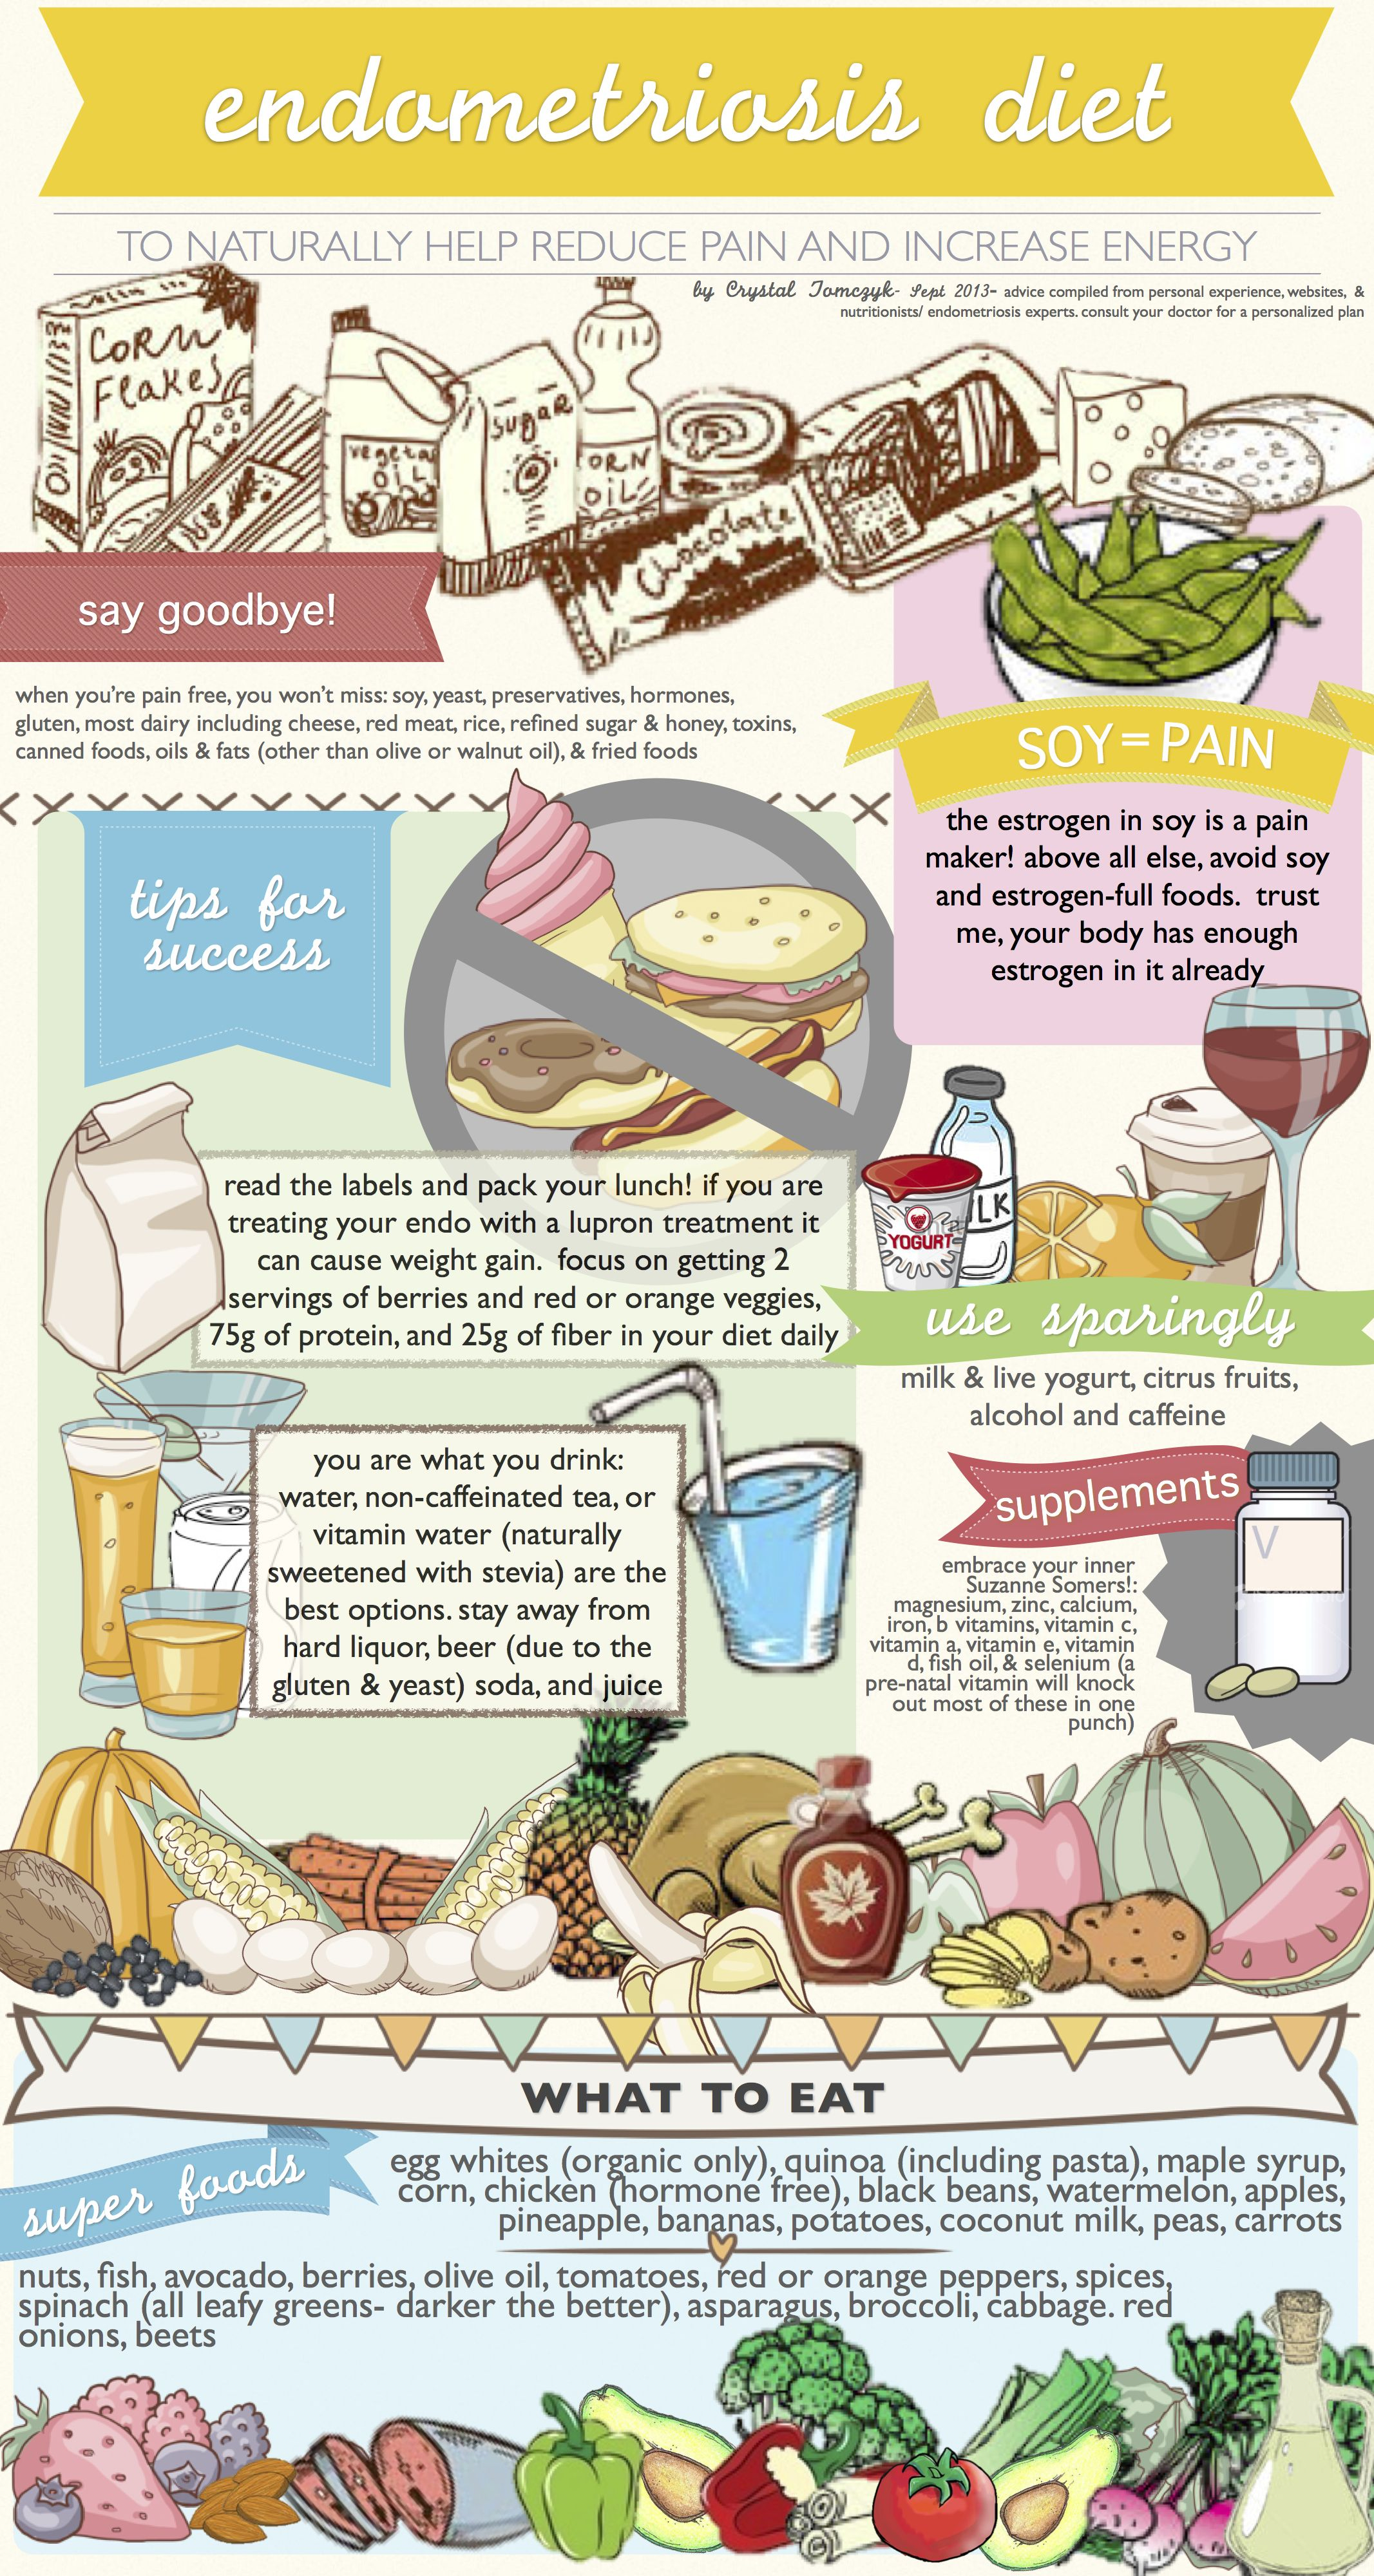 Endometriosis Diet Similar To Paleo Diet Made This To Help Track What Foods Help And Which Ones Hur Endometriosis Diet Endometriosis Endometriosis Awareness